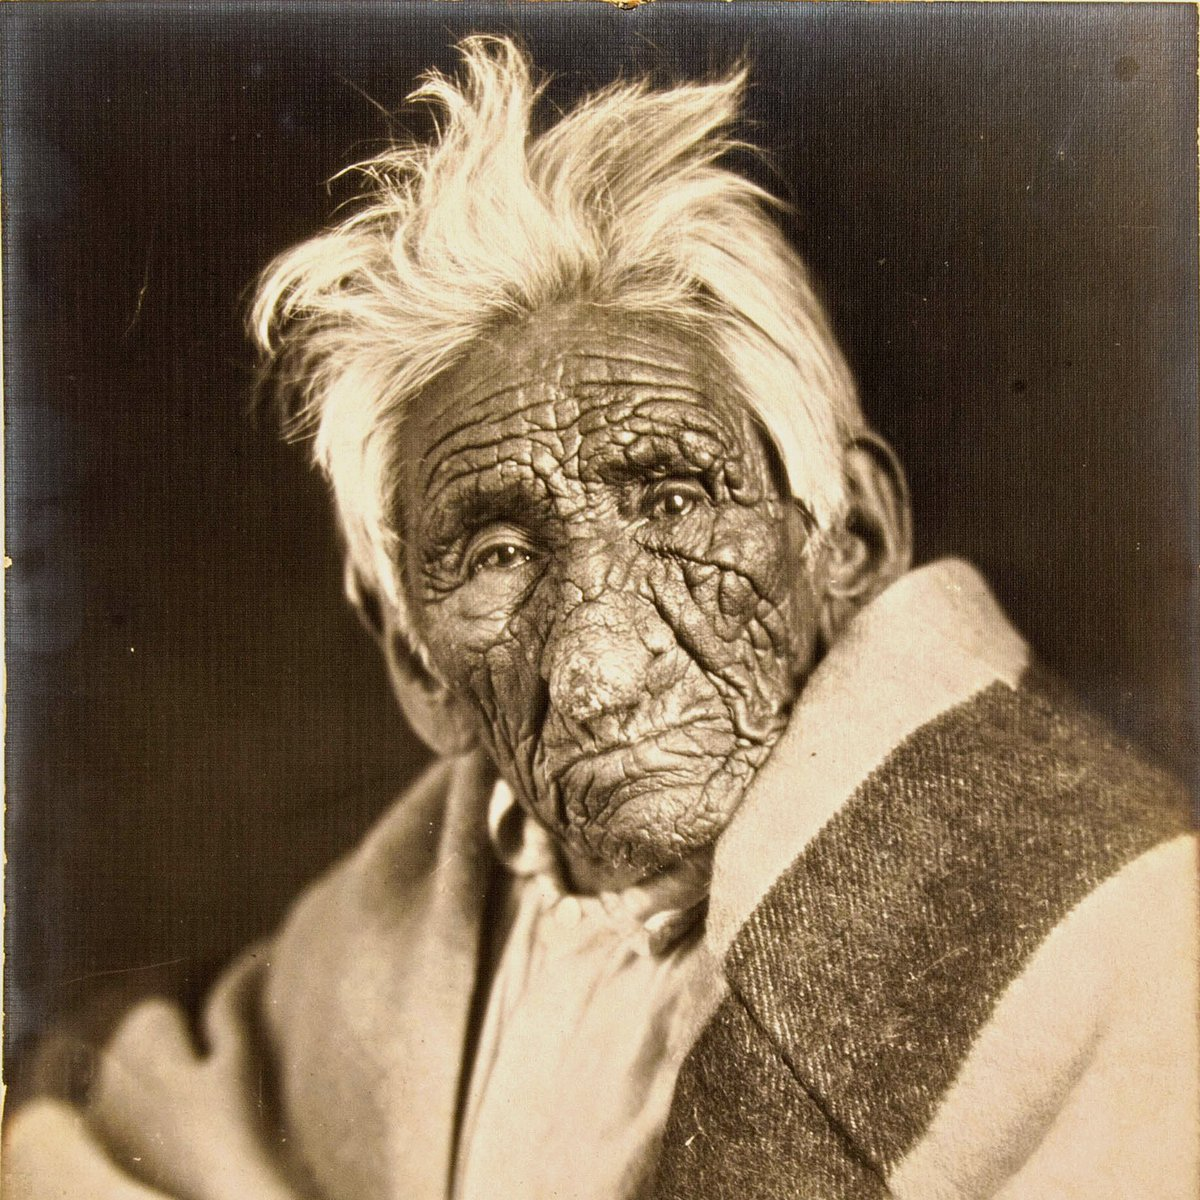 "Chief John Smith (born between 1822 and 1826 (allegedly as early as 1784), died February 6, 1922), also known as Gaa-binagwiiyaas (""which the flesh peels off""), a Chippewa Indian who lived in Cass Lake, Minnesota."